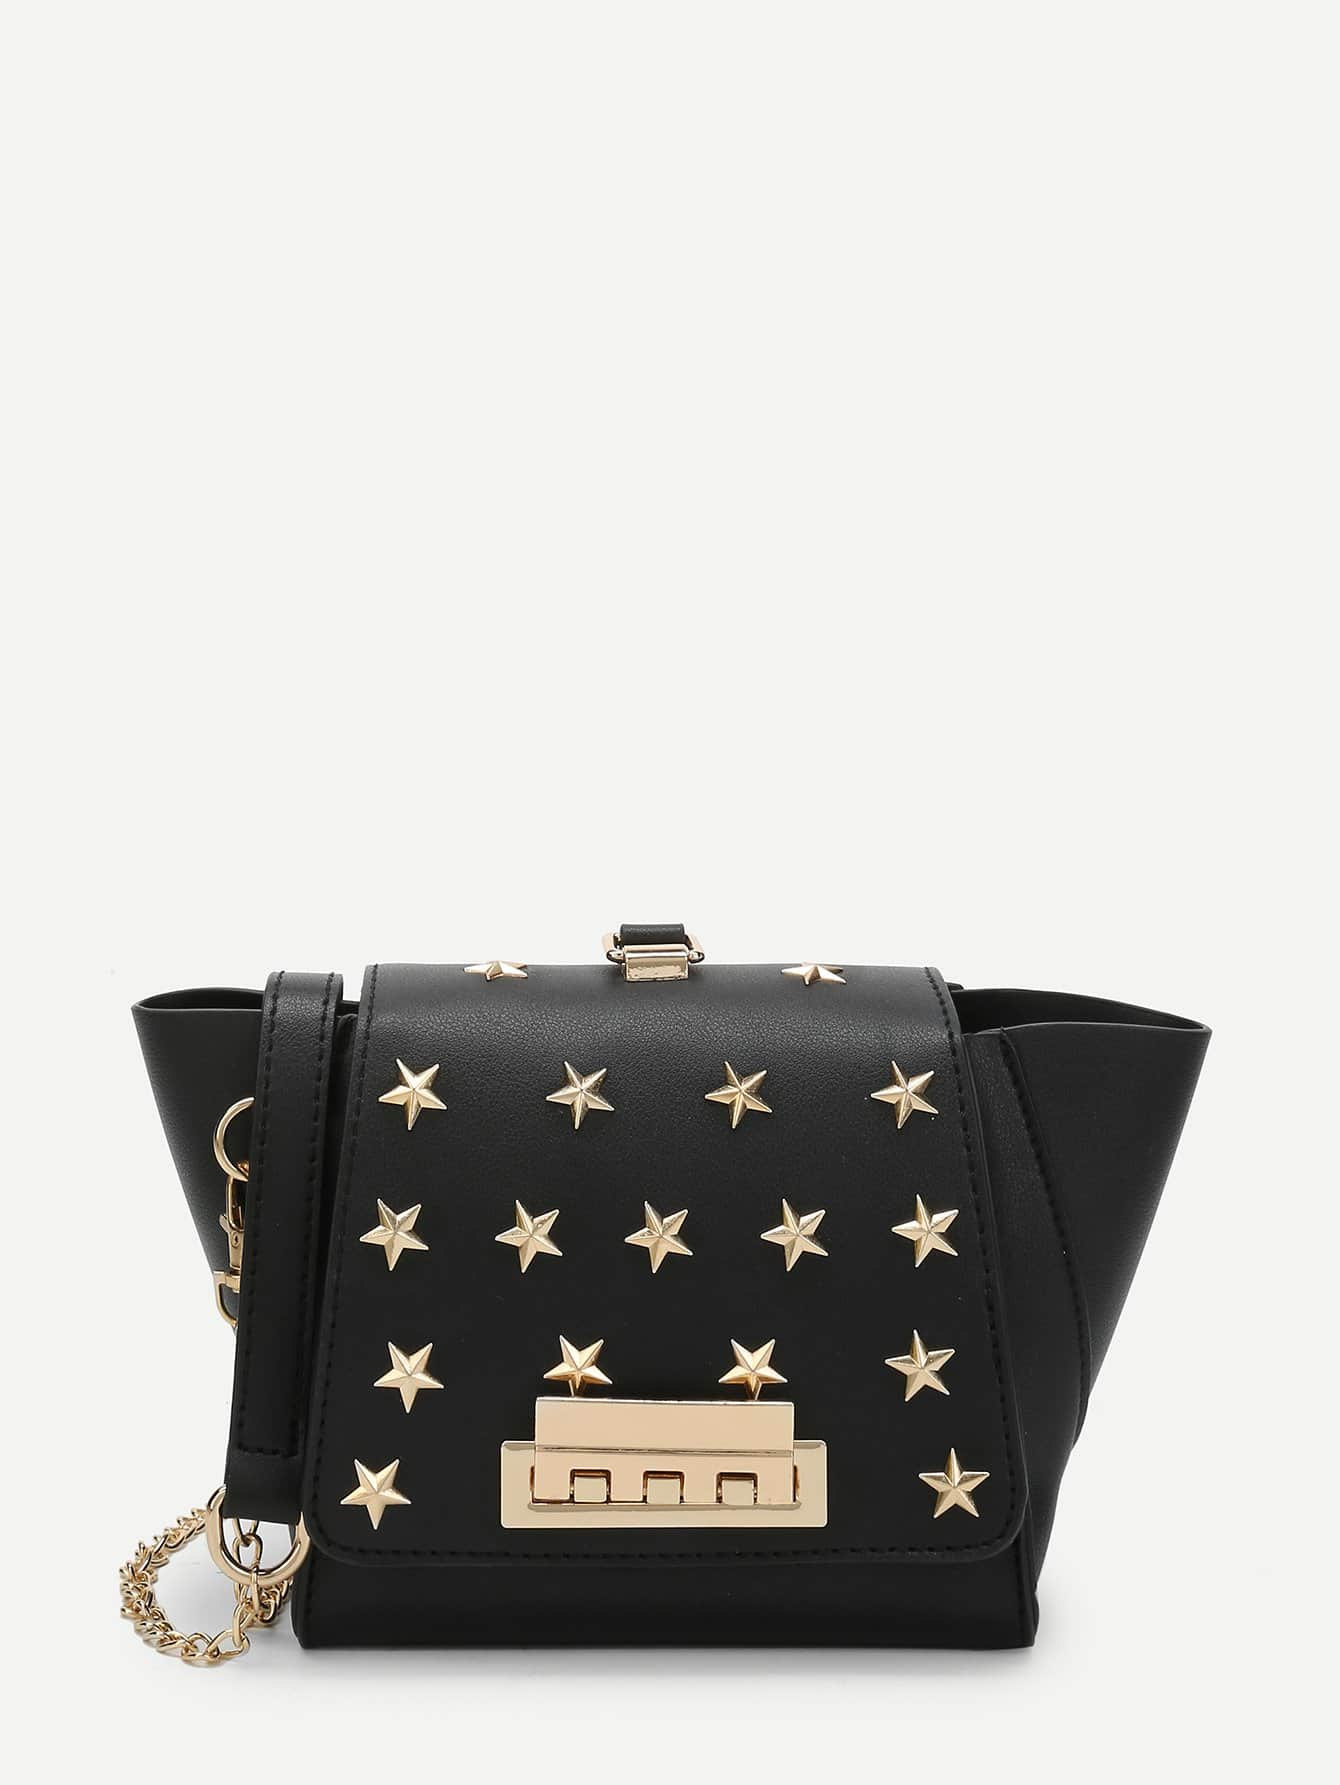 Star Rivet Crossbody Chain Bag кордщетка атака 22396